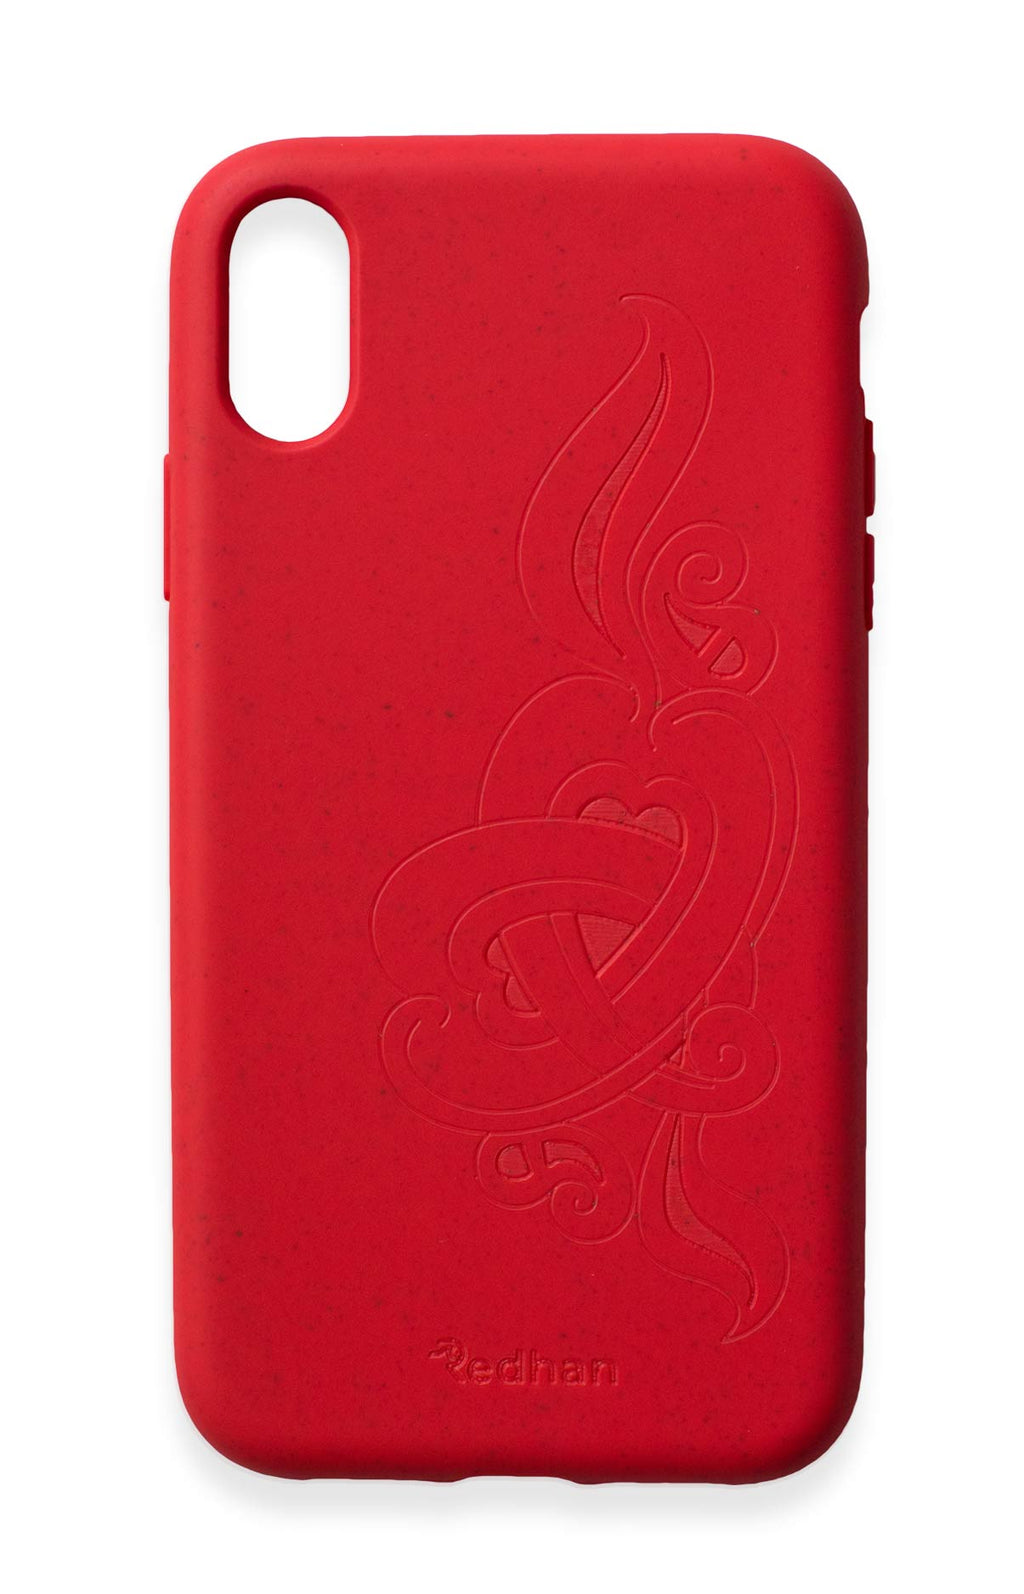 'Hirigaa' or Stone Art in Ruby Red  - iPhone XR